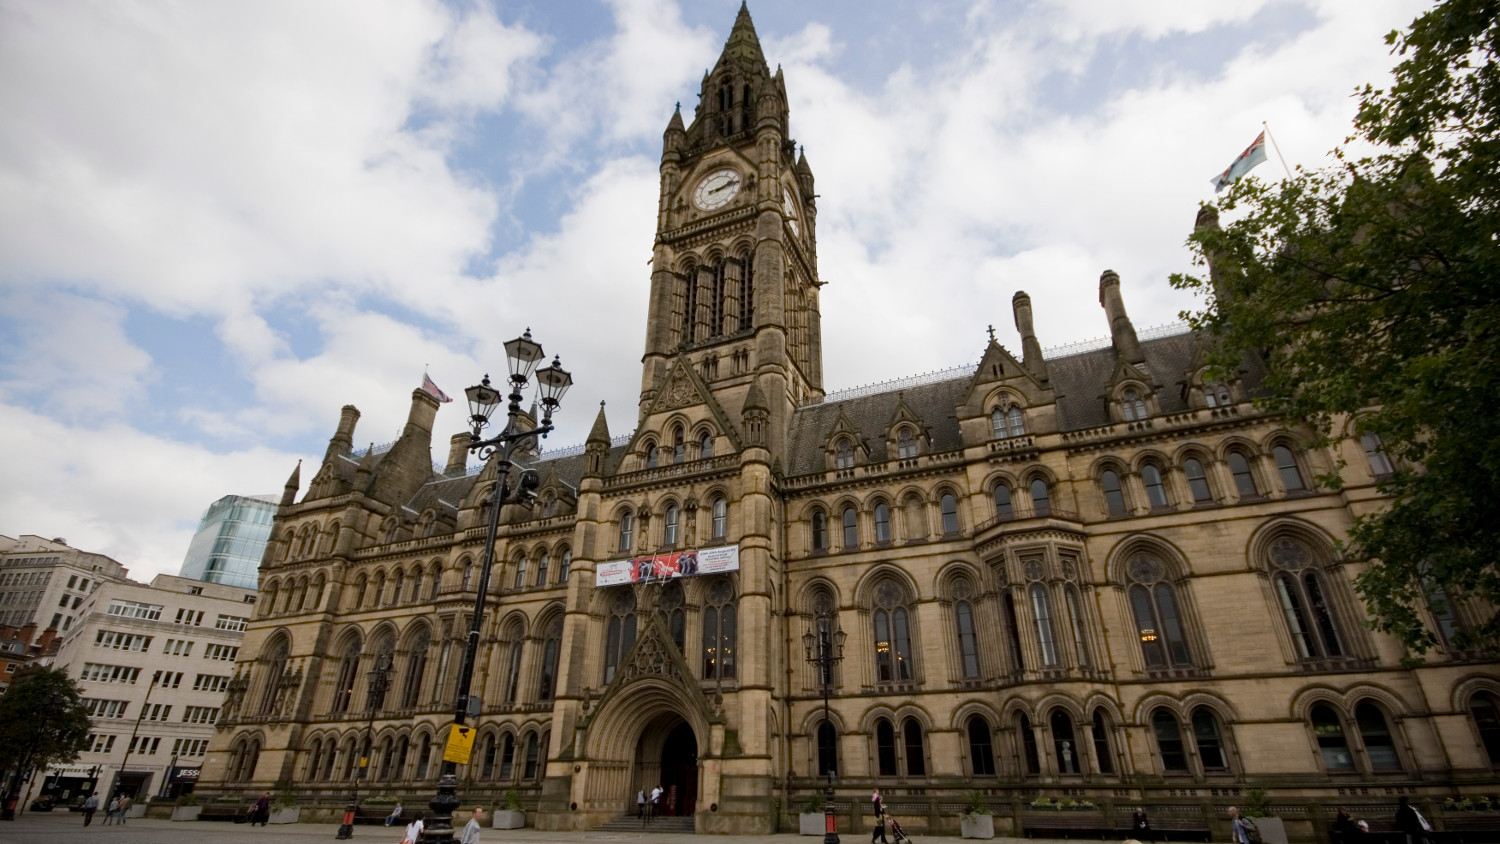 Cross Party Calls For Manchester Planning Committee To Be Reinstated The Meteor